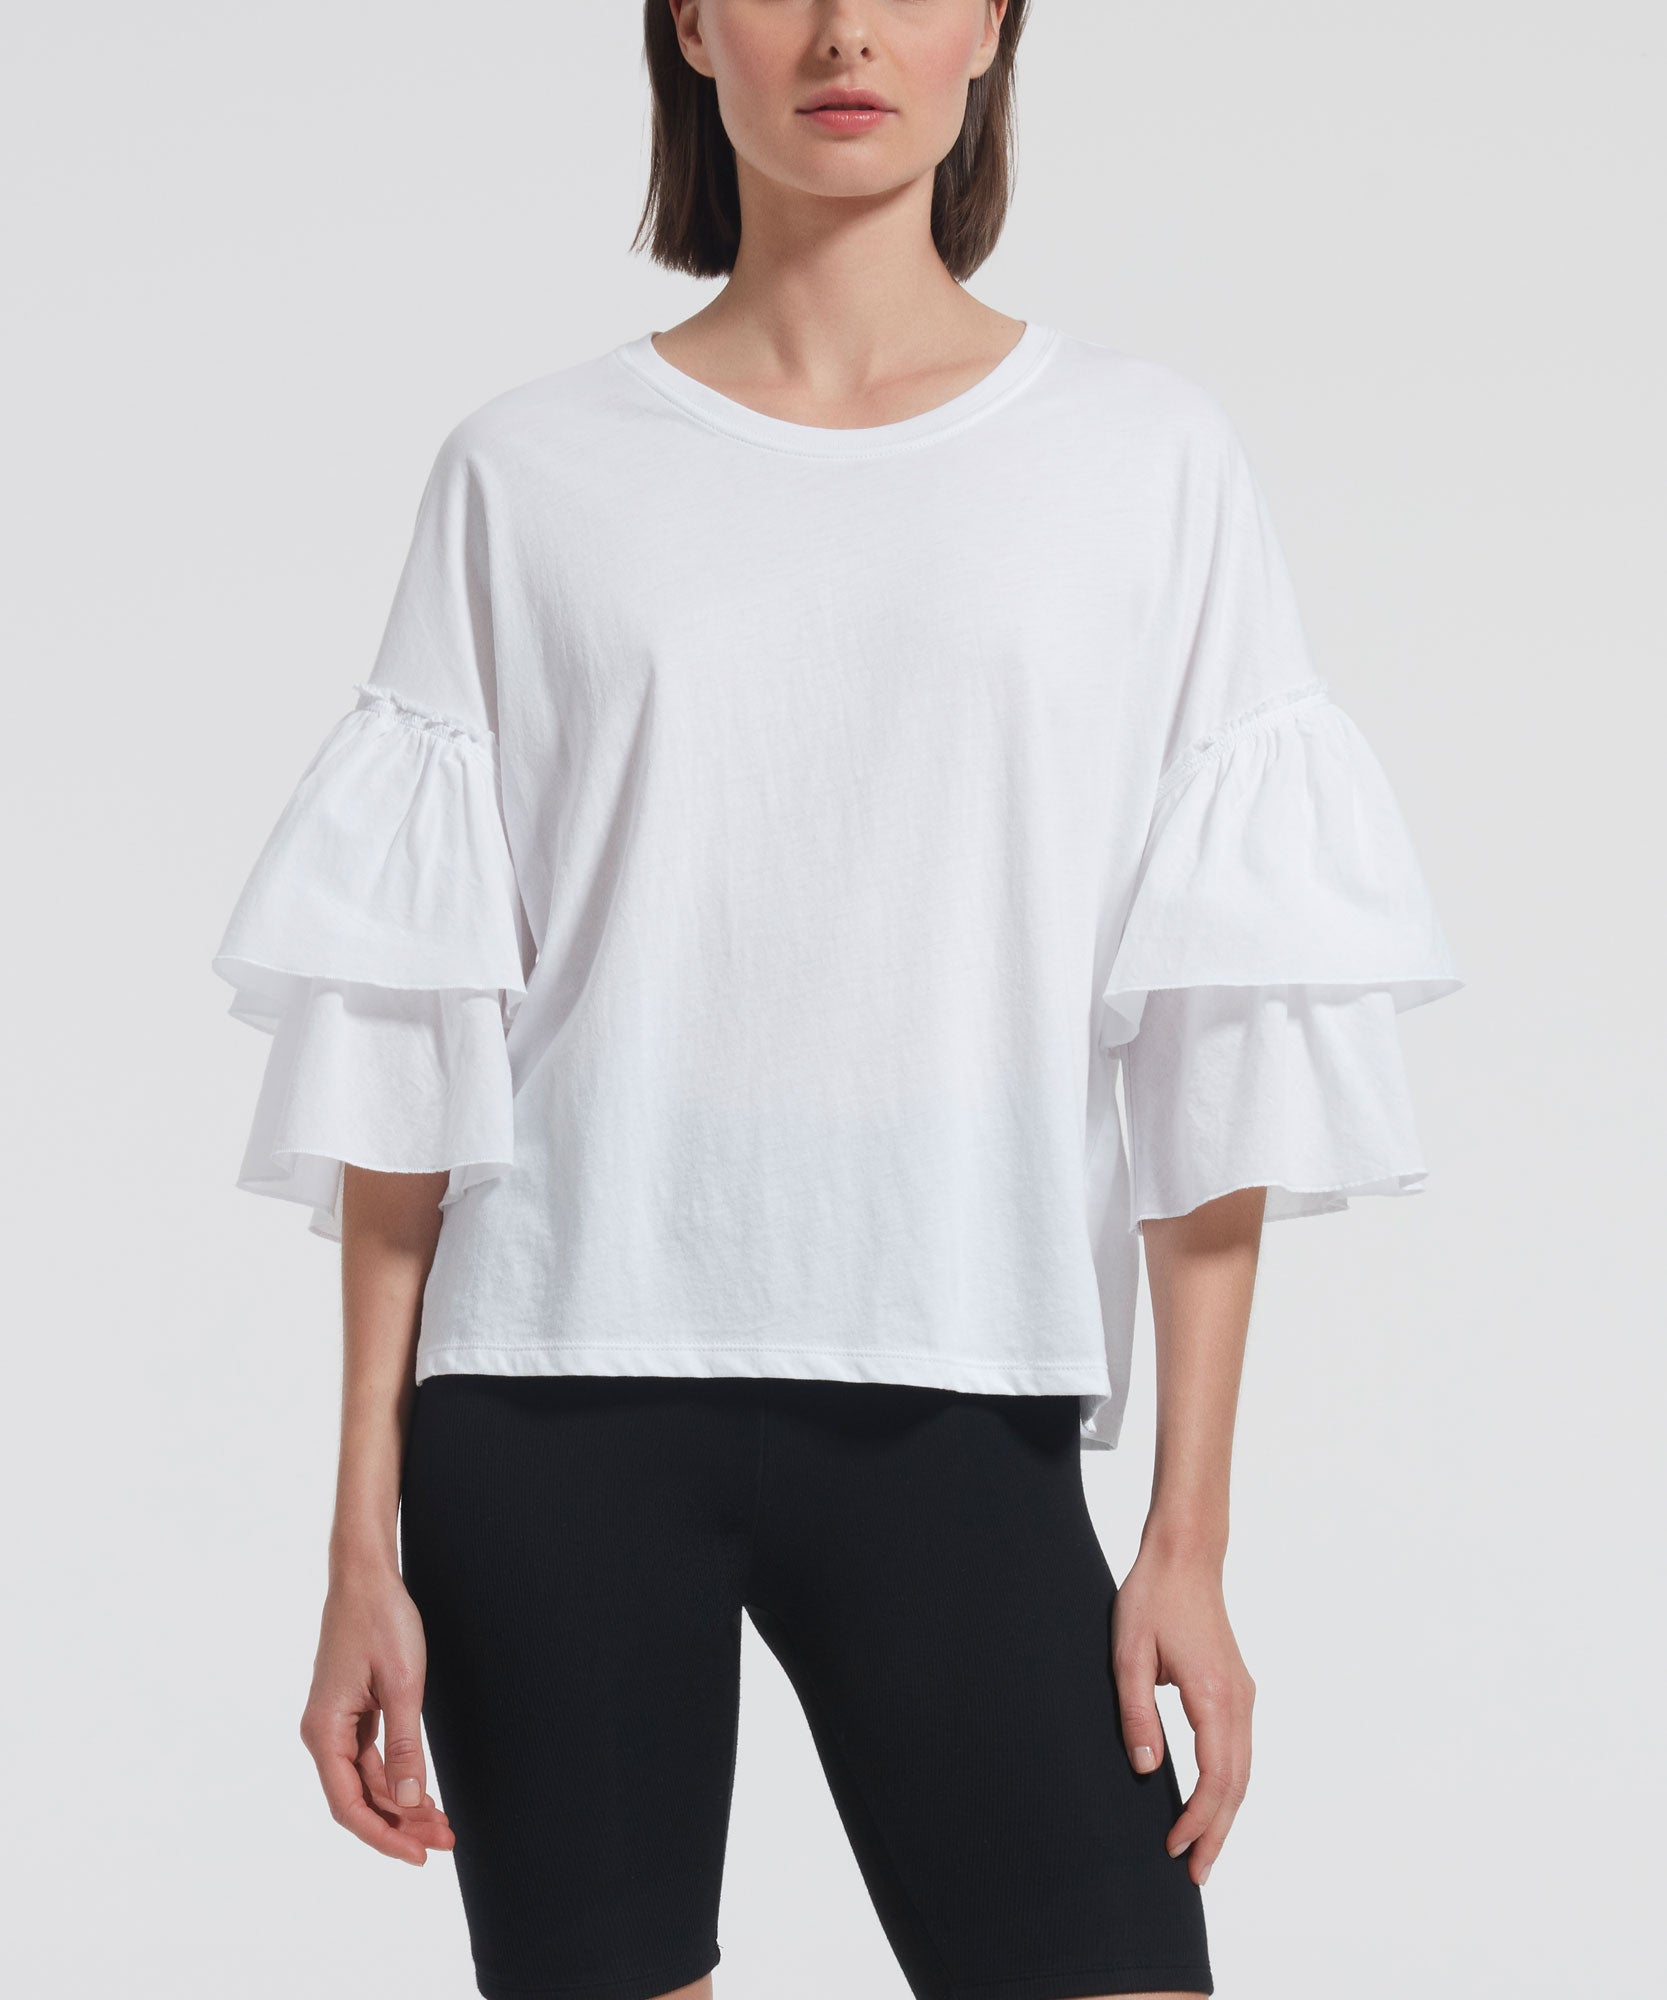 White Mixed Media Top - Women's Cotton Top by ATM Anthony Thomas Melillo